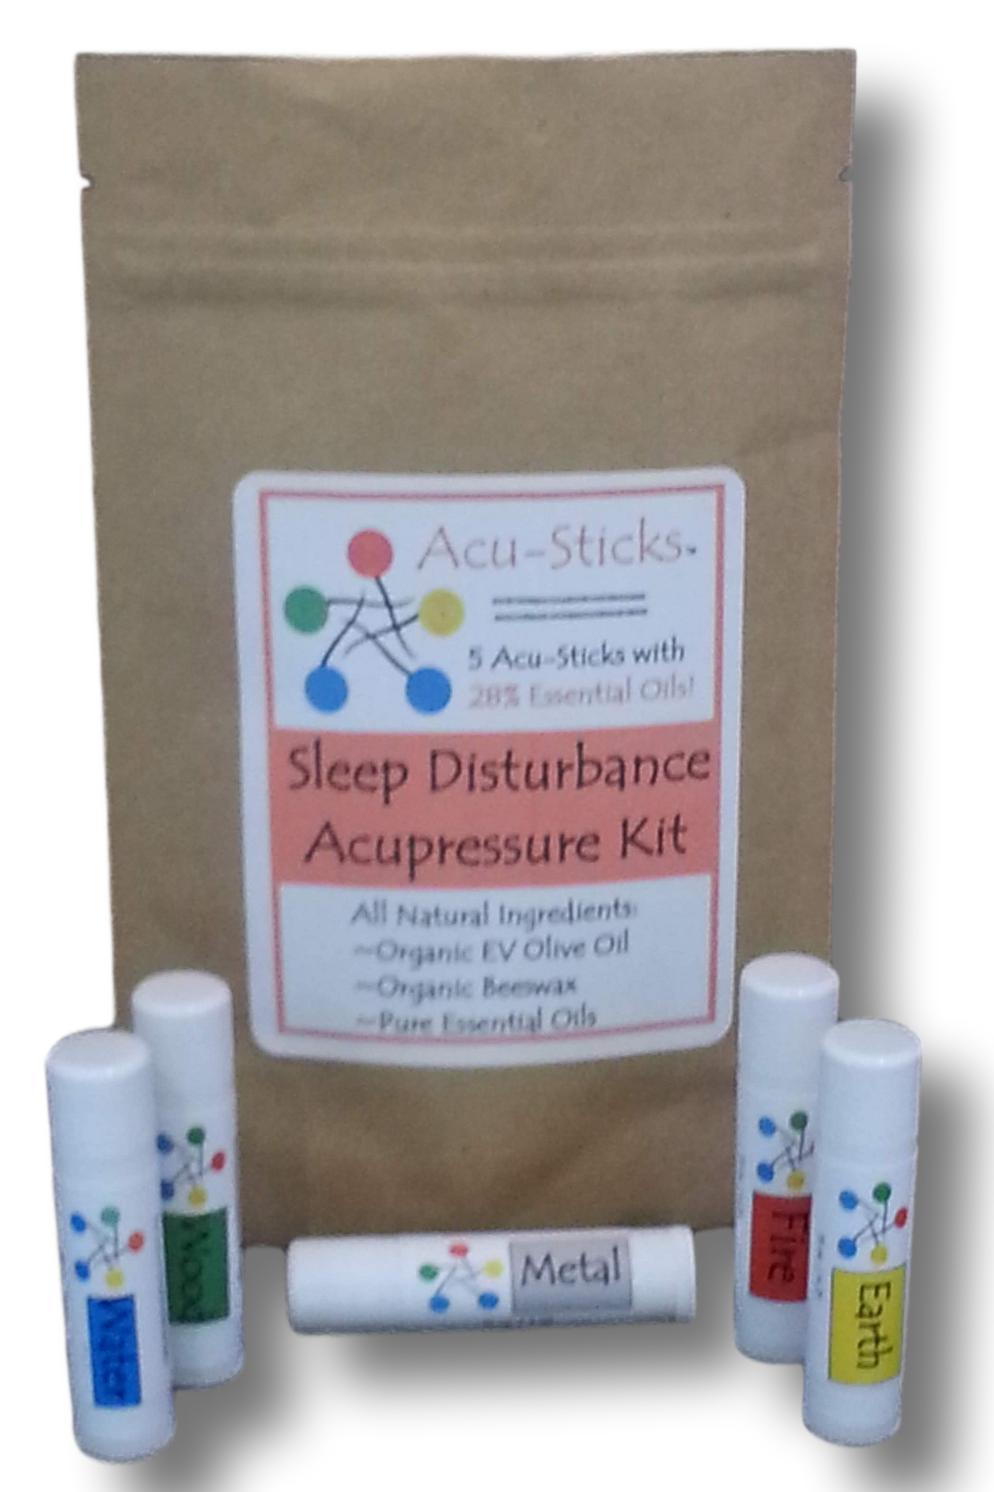 sleep-problems acupressure kit for insomnia